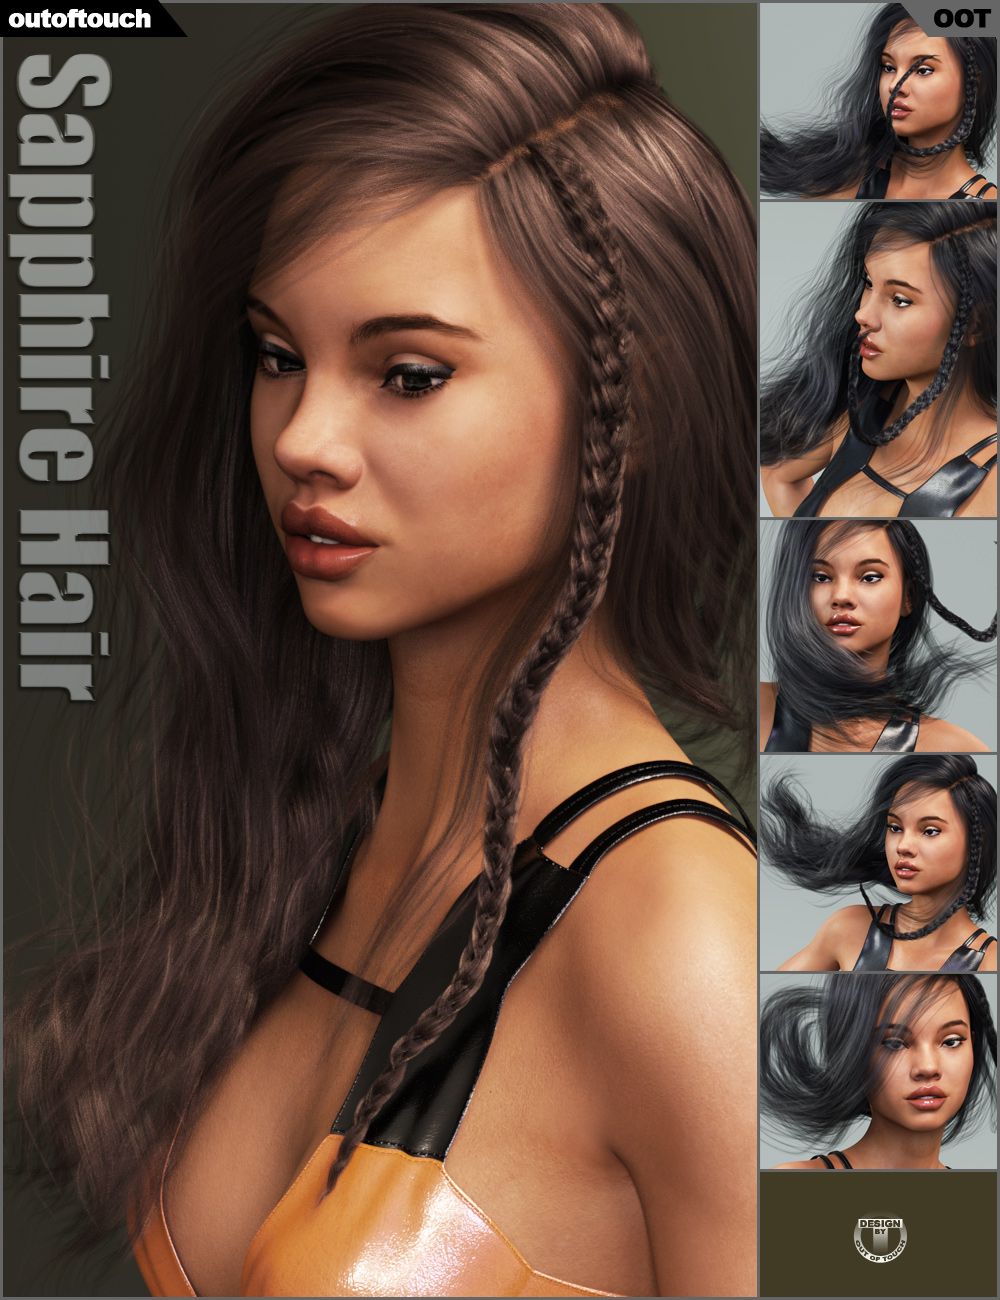 Sapphire Hair by: outoftouch, 3D Models by Daz 3D